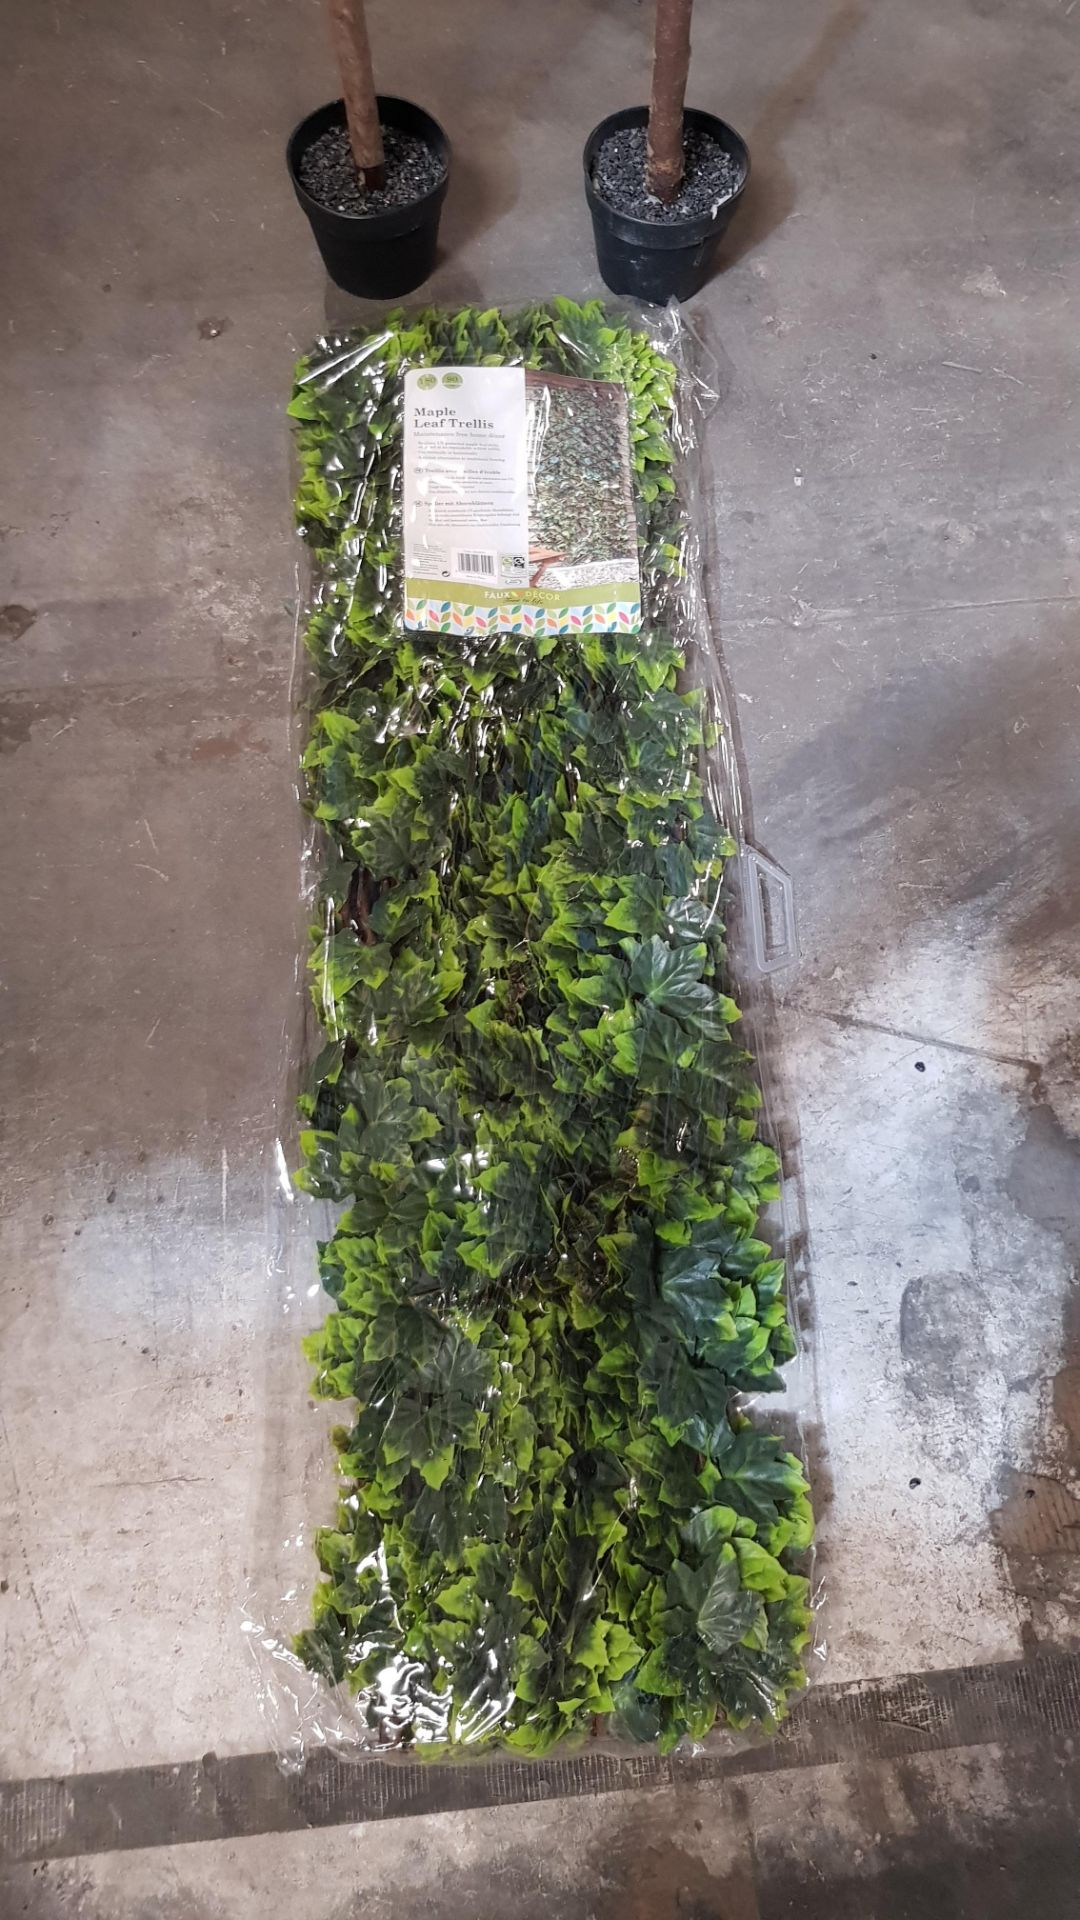 (4P) 3x Garden Items. 2x Artificial Olive Tree (With Tags) RRP £39 Each. 1x Maple Leaf Trellis (Sea - Image 5 of 6